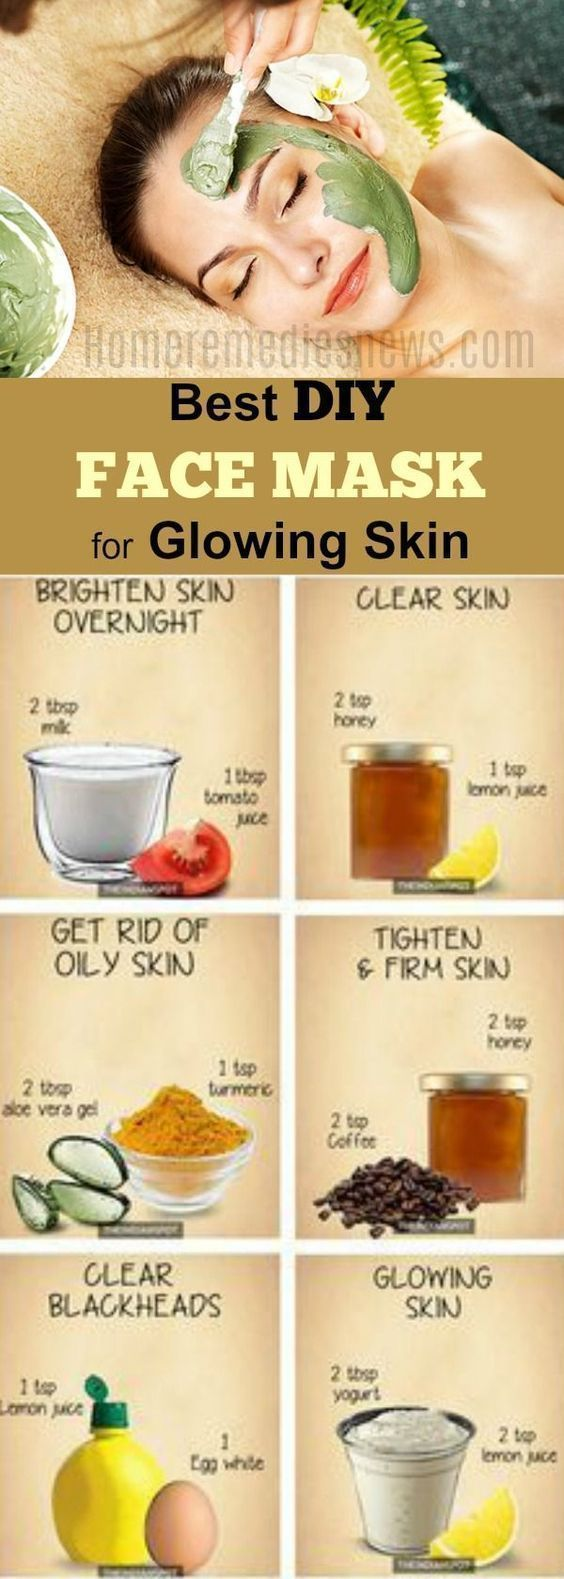 Photo of 5 Best DIY Face Mask For Acne Scars Anti-Aging Glowing Skin And Soft Skin. O Ski…